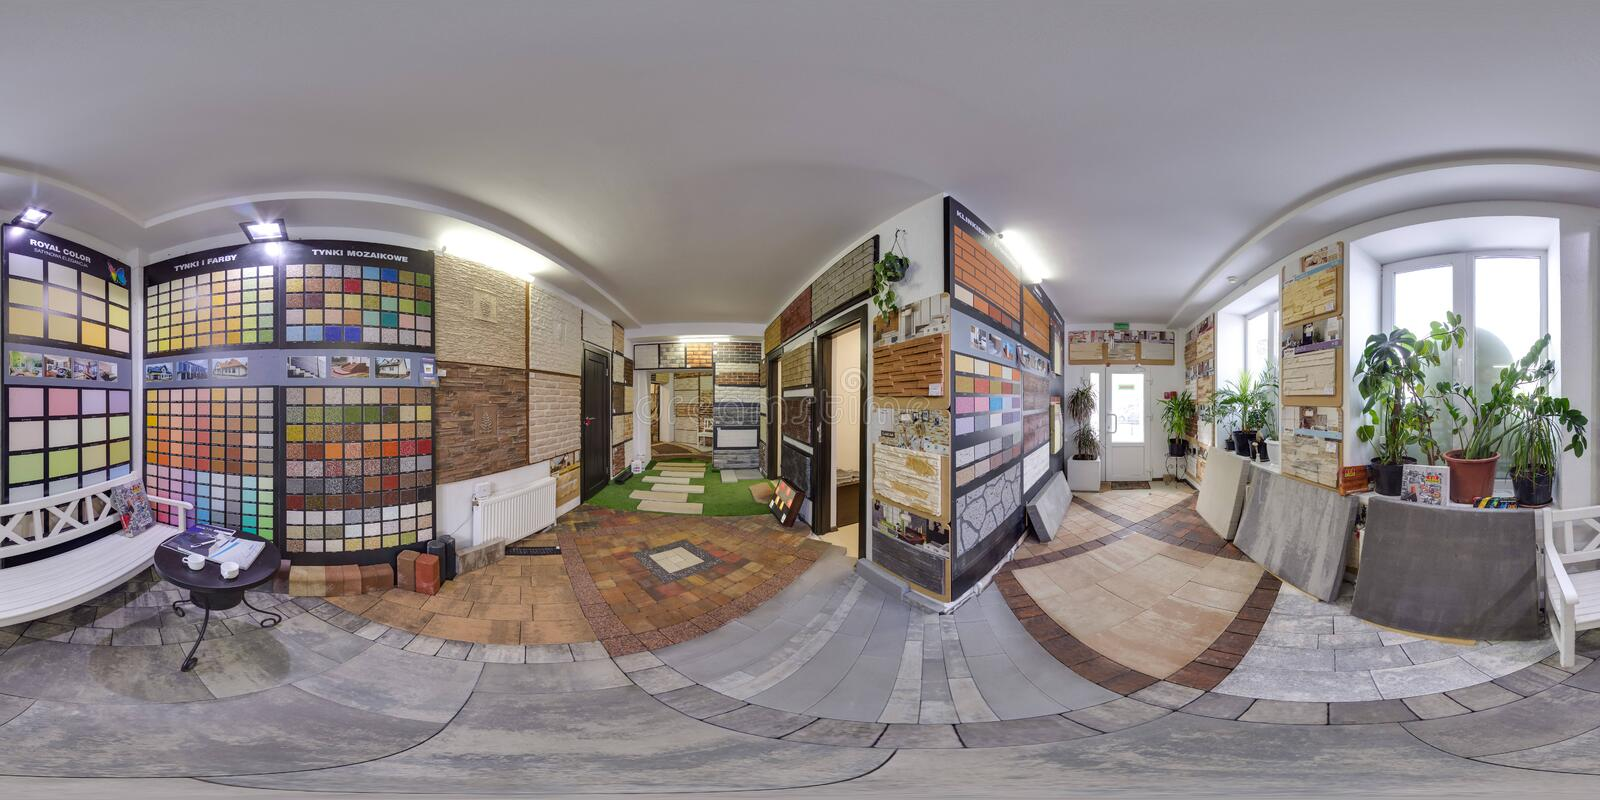 Moscow-2018: 3D spherical panorama with 360 degree viewing angle. Of the hardware store interior with paving slab and decorative tiles. Full equirectangular royalty free stock photos